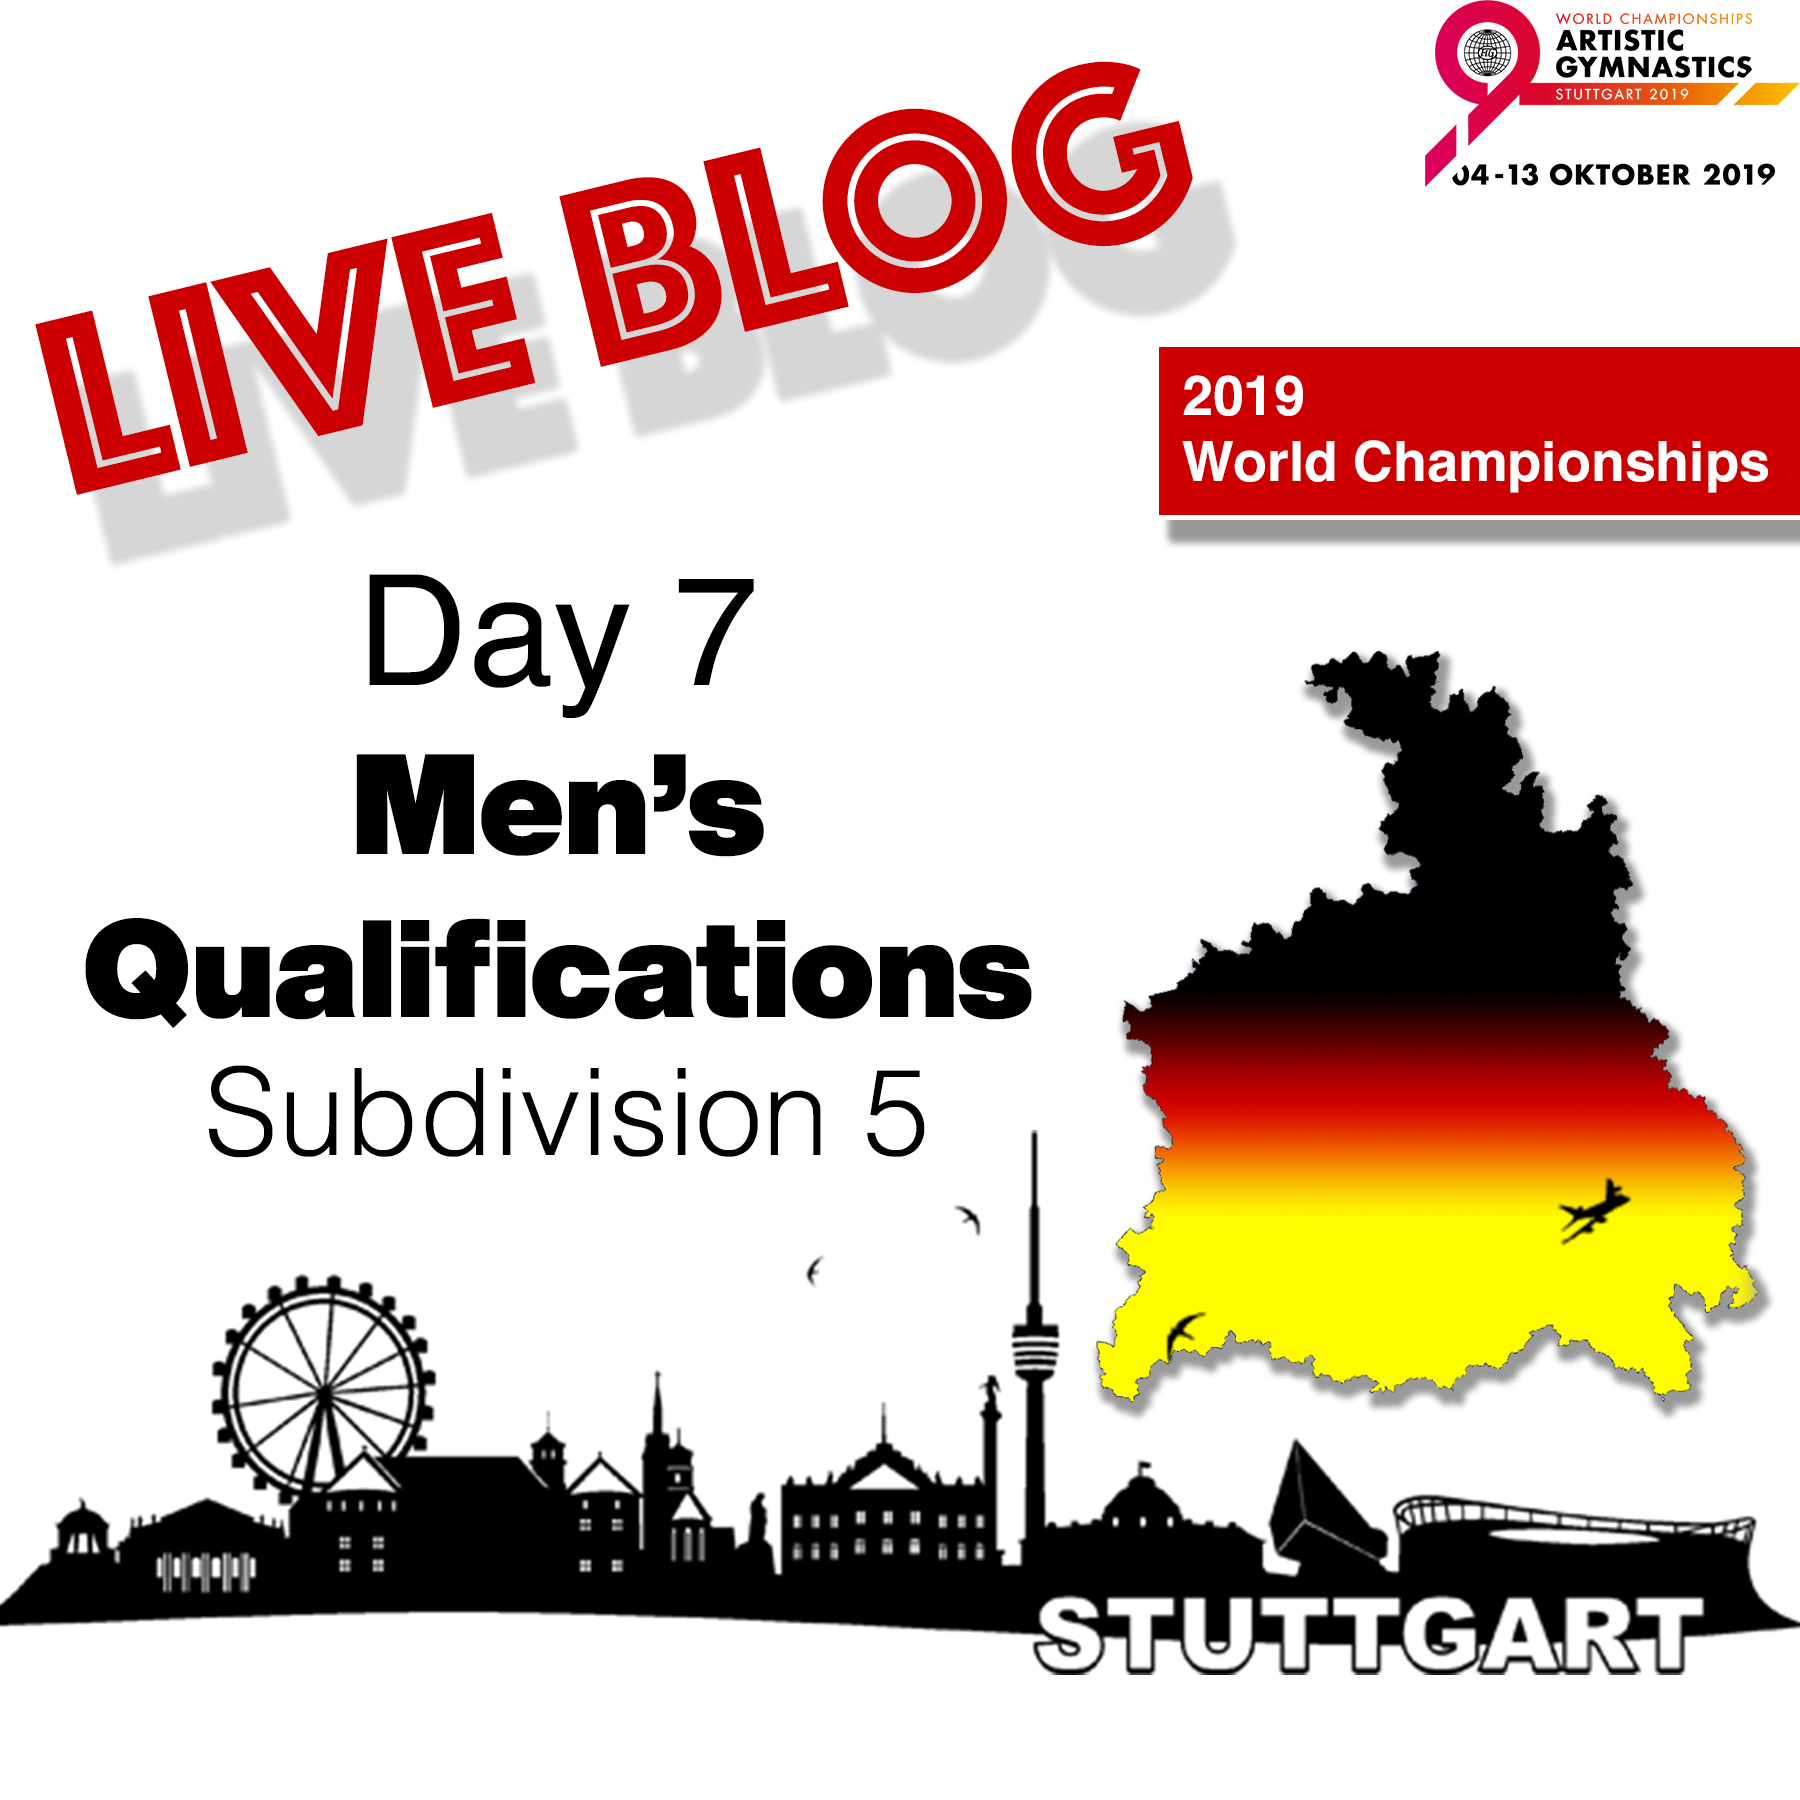 Live Blog: 2019 World Championships – MAG Qualifications – Sub Division 5, Oct. 7th